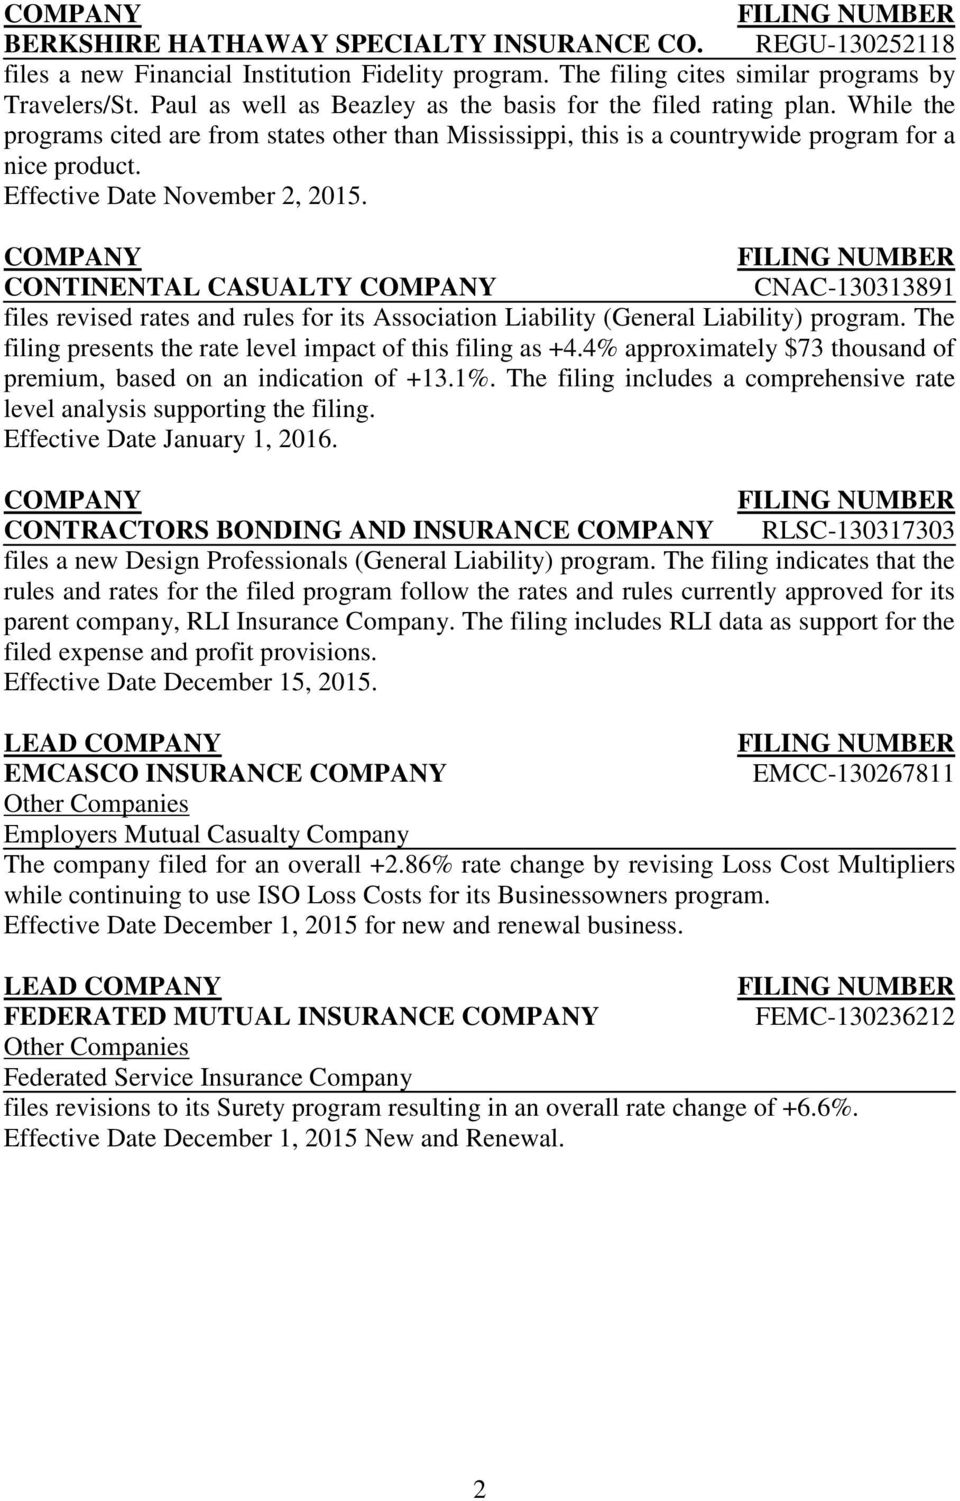 Effective Date November 2, 2015. CONTINENTAL CASUALTY CNAC-130313891 files revised rates and rules for its Association Liability (General Liability) program.